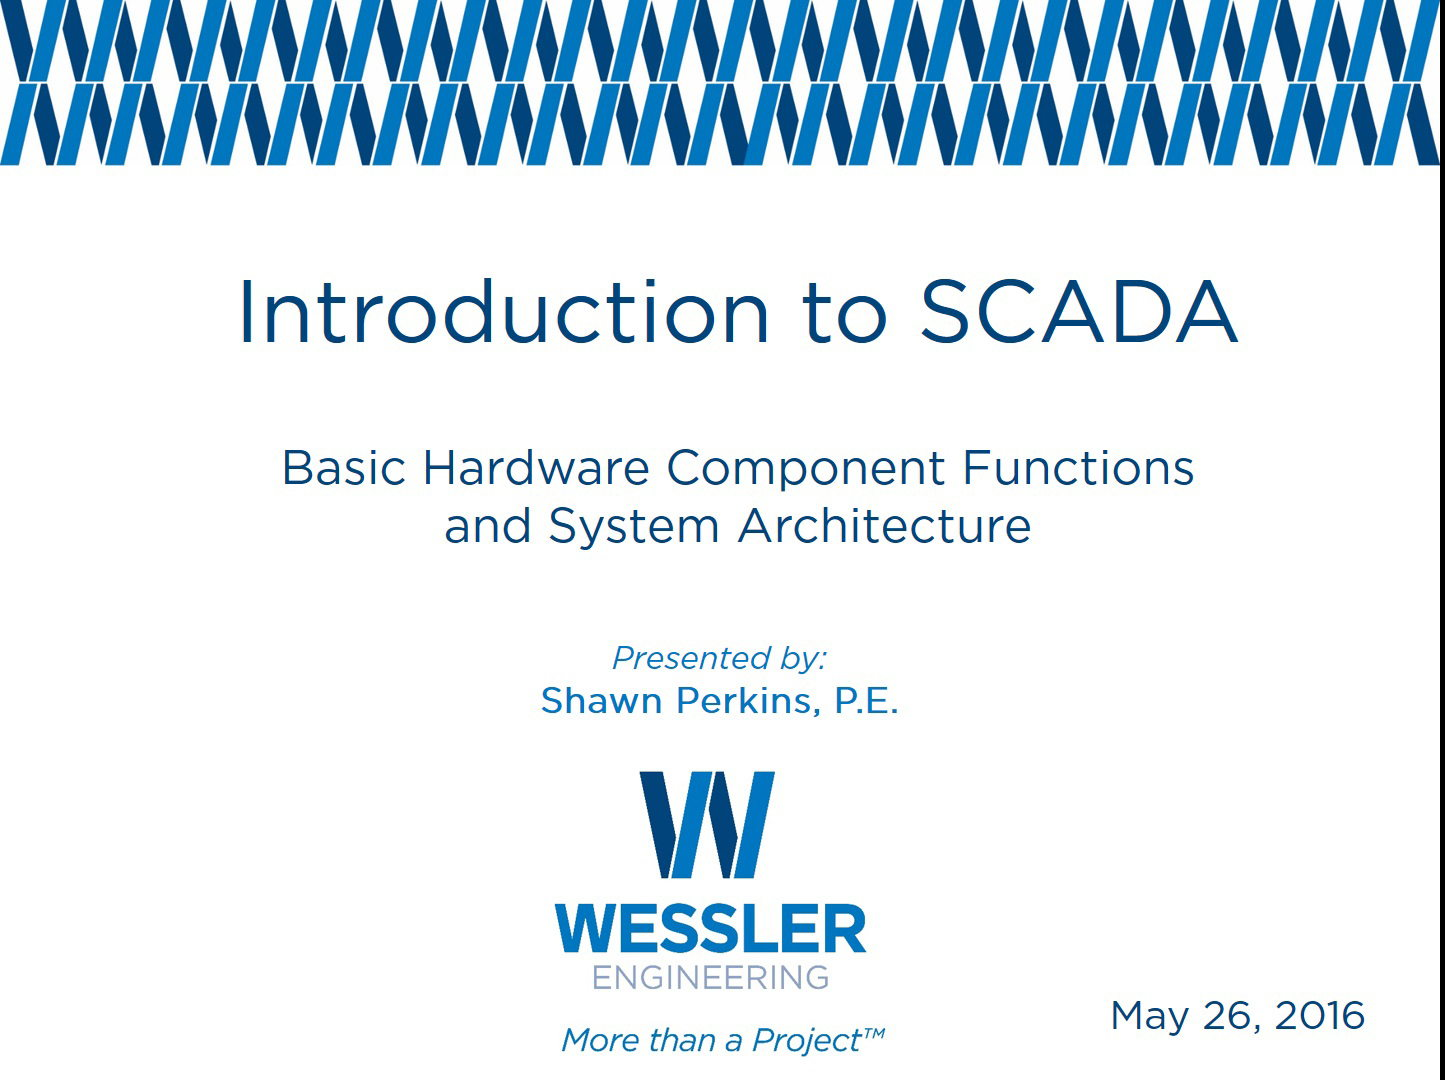 Intro to SCADA: Basic Component Functions and Architecture